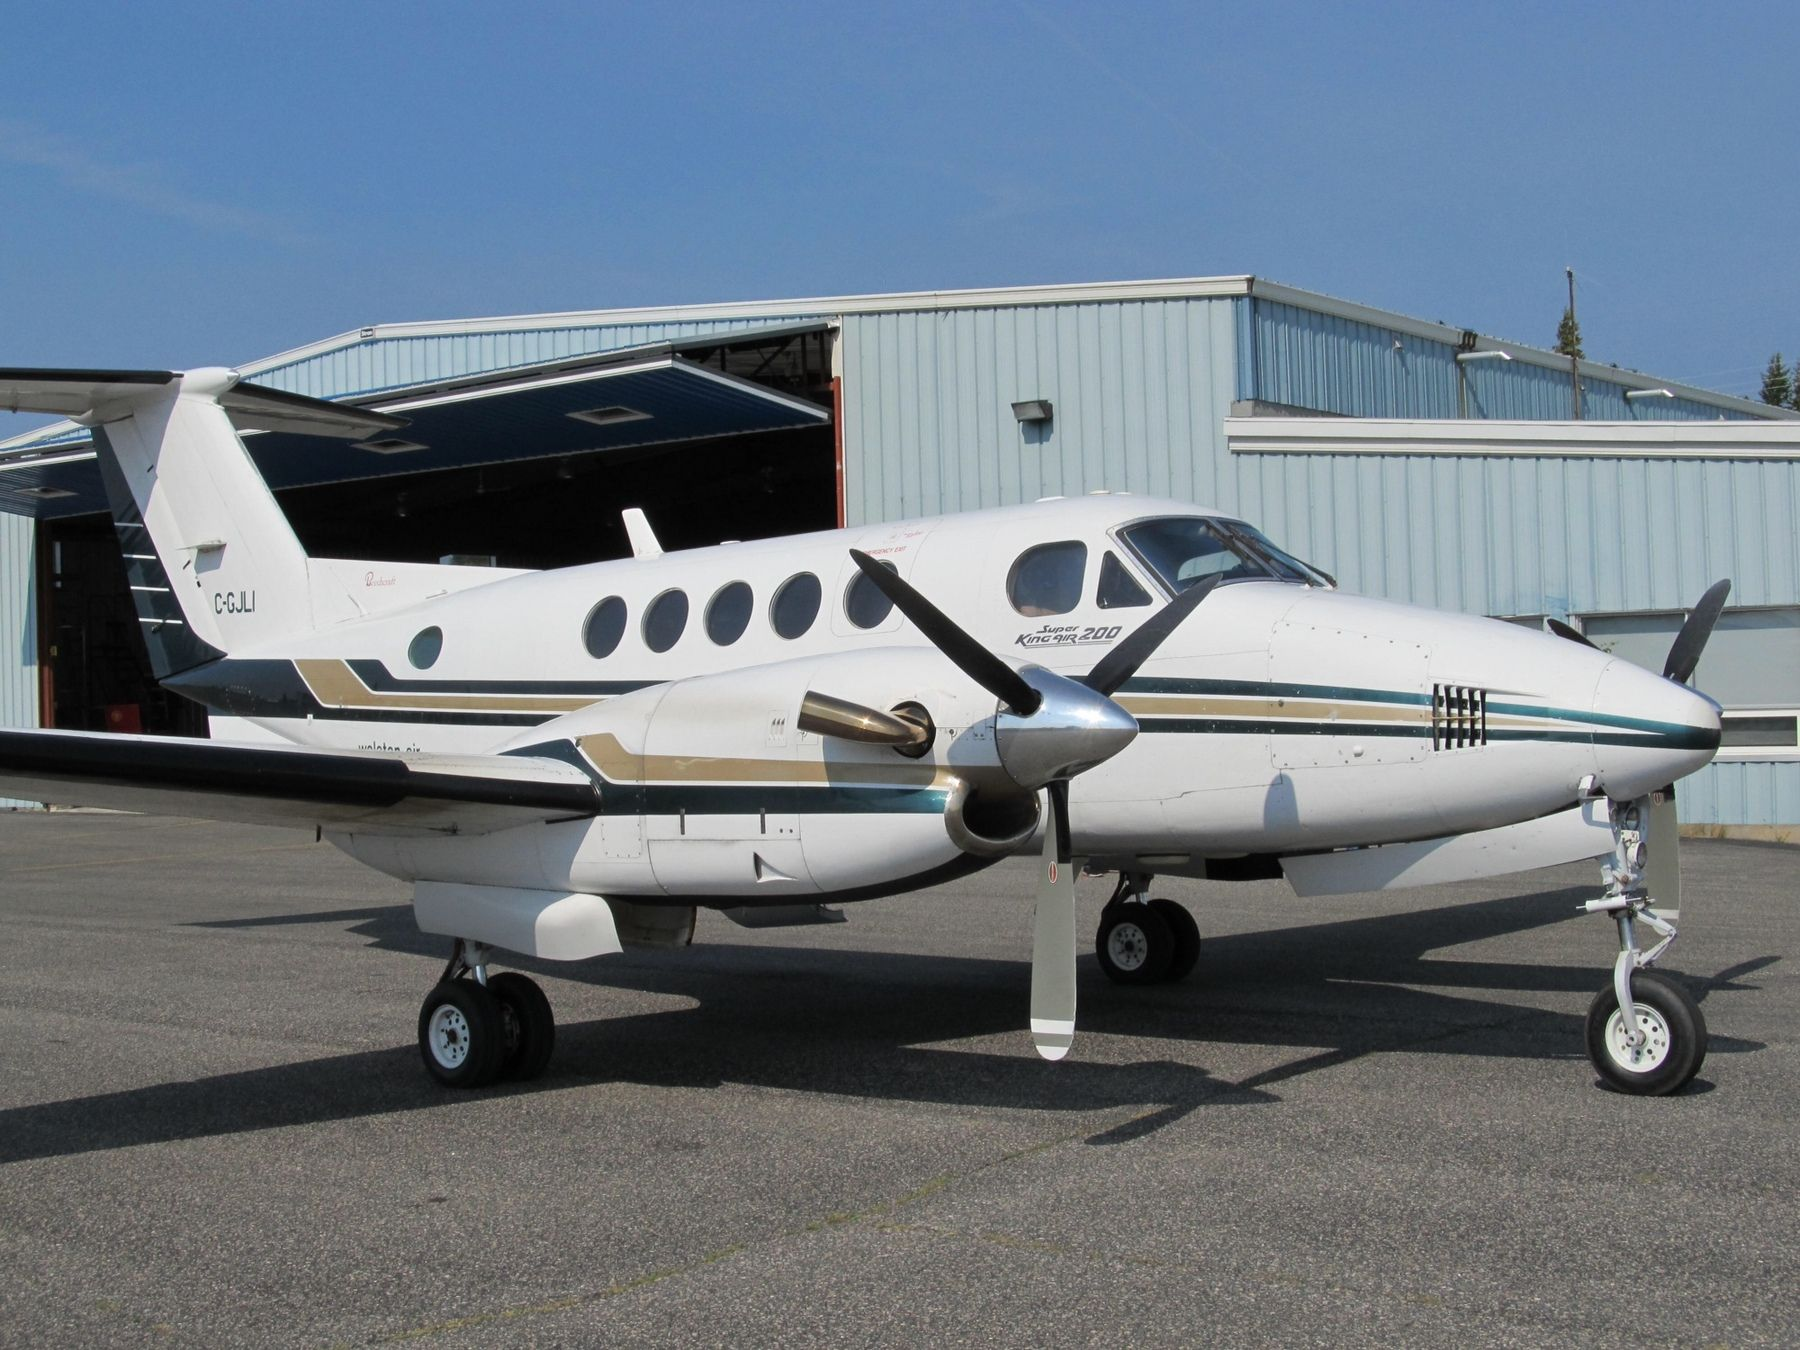 1978 Beechcraft King Air 200 for sale in Canada => http